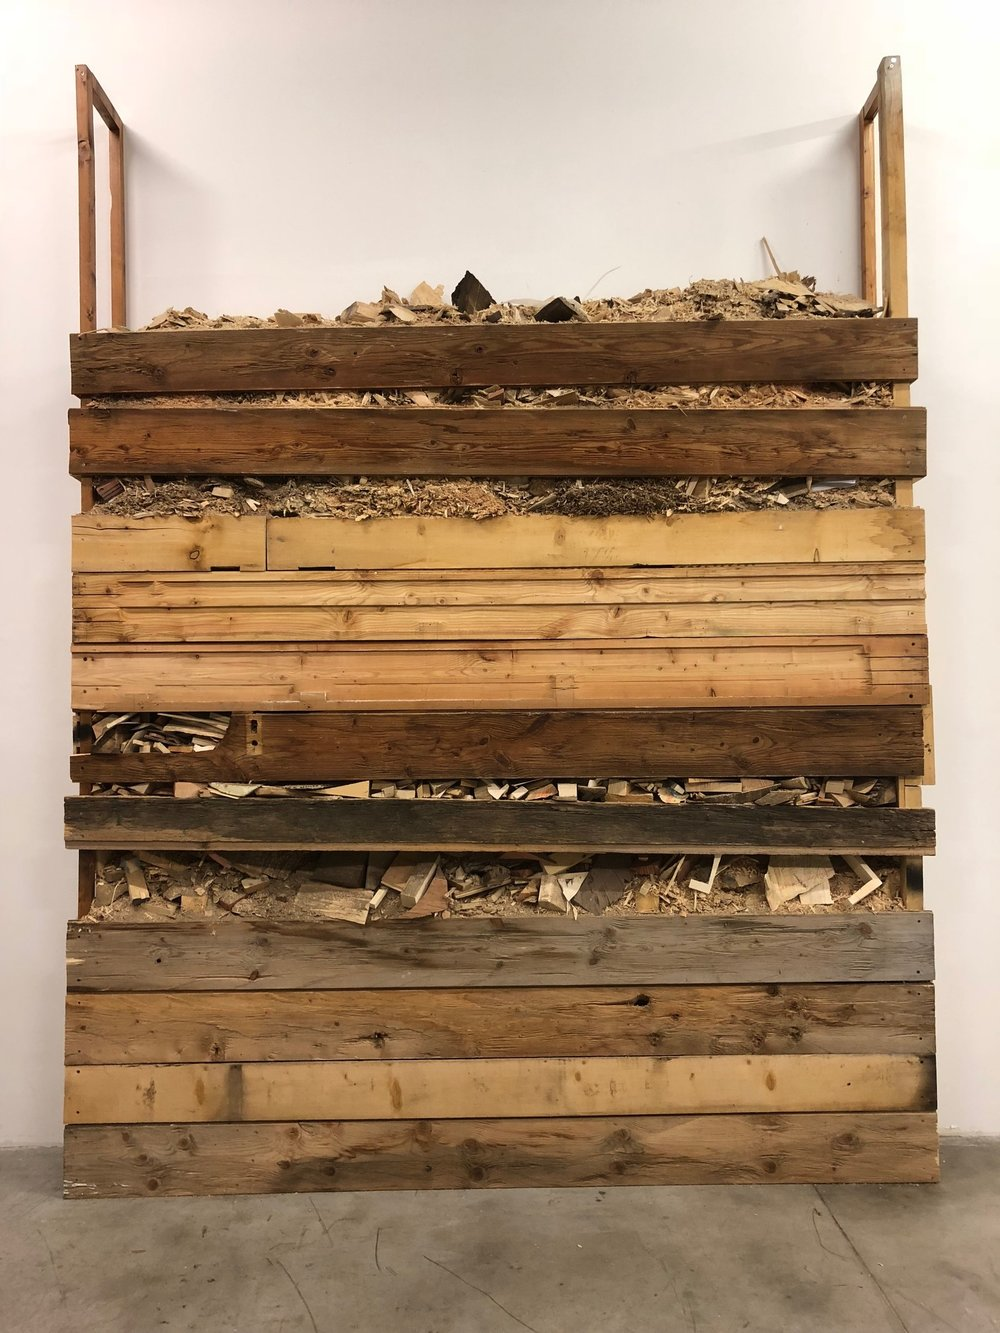 Finbar Ward, Shed / Shed (Aron), 2018, reclaimed timber, waste material from the studios of Aron Demetz, Arnold Holzknecht and Walter Moroder screws, 330 x 255 x 36 cm